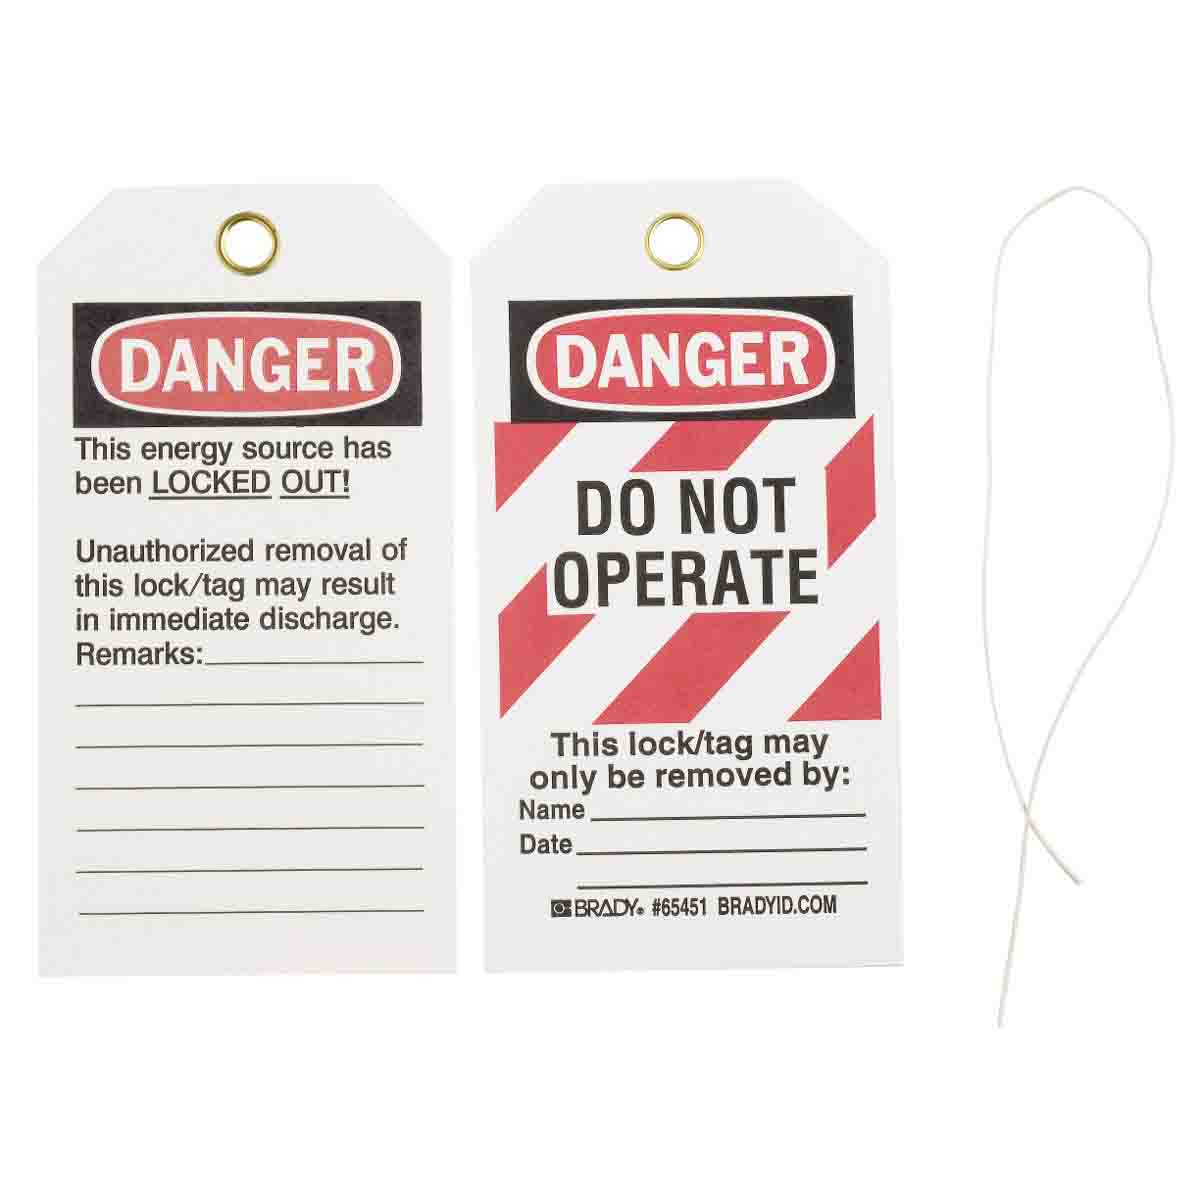 Brady® 65407 Rectangular Lockout Tag, 5-3/4 in H x 3 in W, Black/Red on White, 3/8 in Hole, B-853 Cardstock